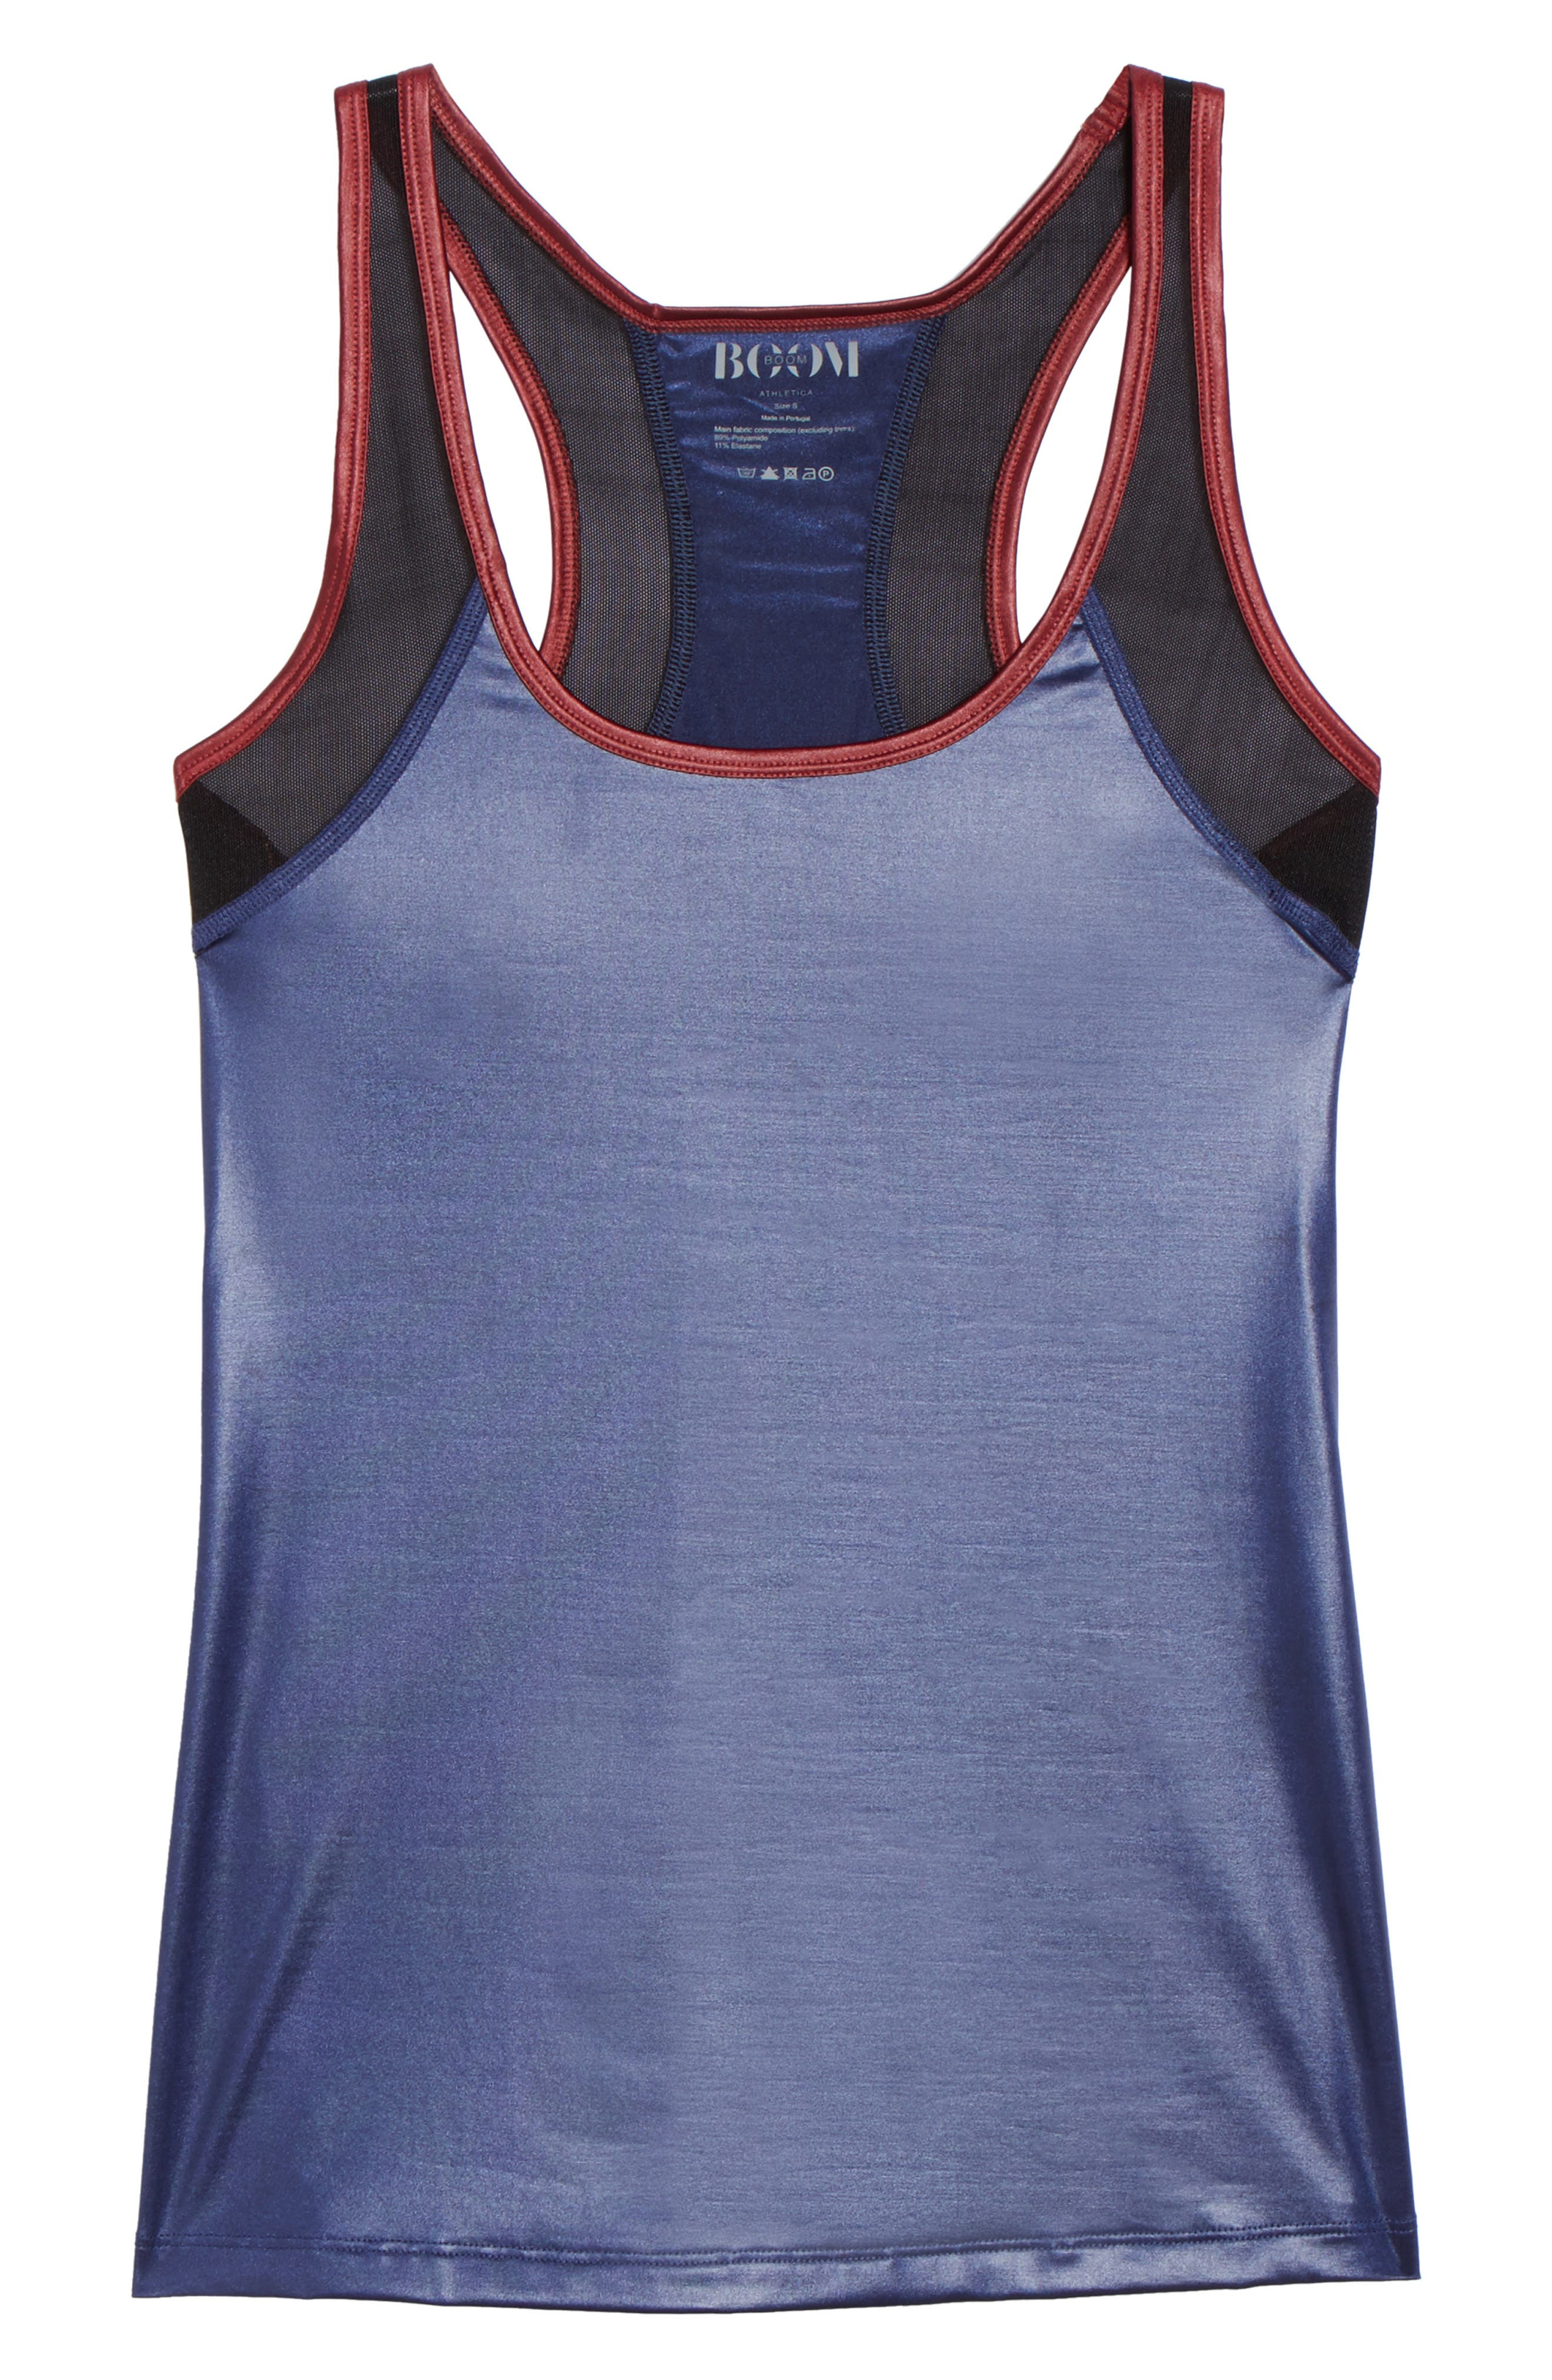 BoomBoom Athletica Glossy Tank,                             Alternate thumbnail 7, color,                             Navy/Oxblood